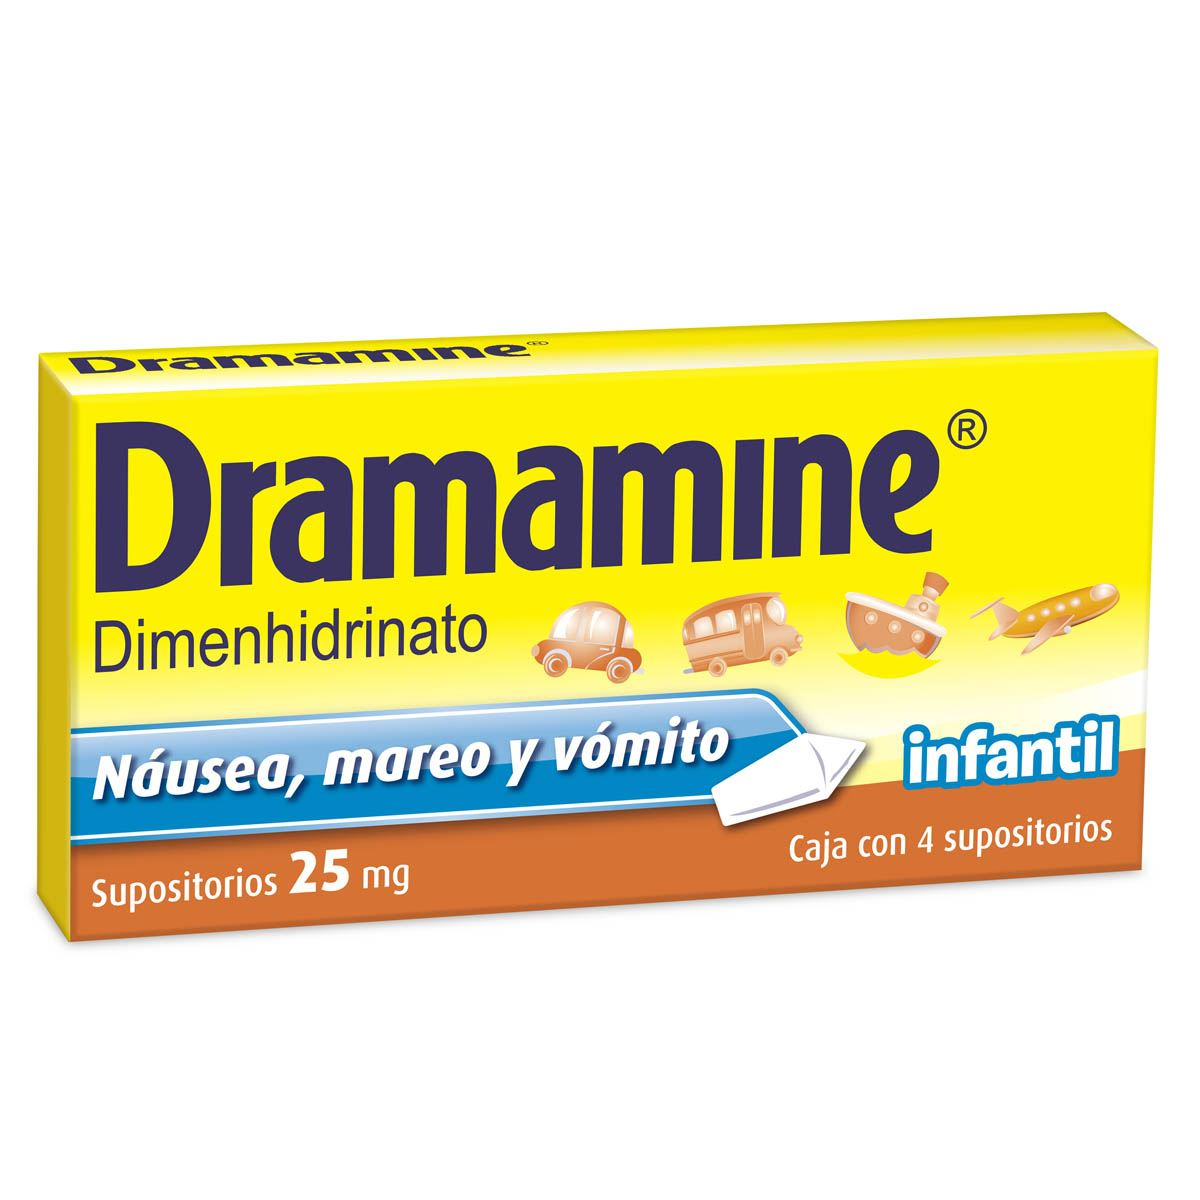 Dramamine Supositorio 25mg